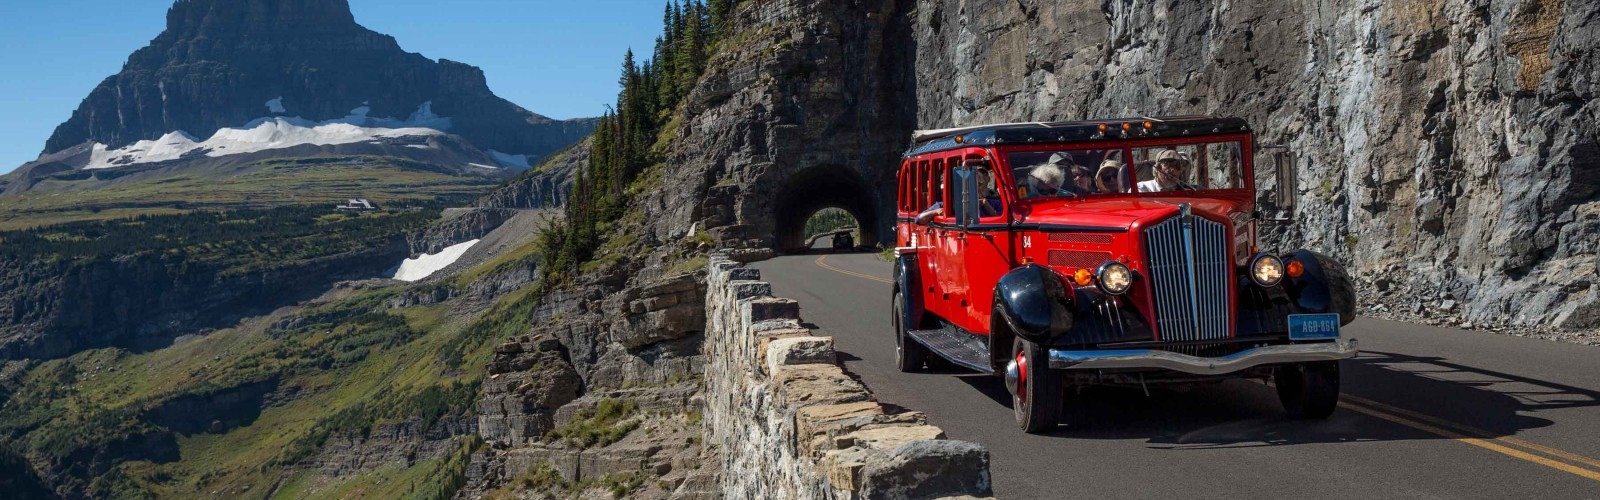 Red Jammer bus travels along Going-To-The-Sun Road in Glacier National Park, Montana.